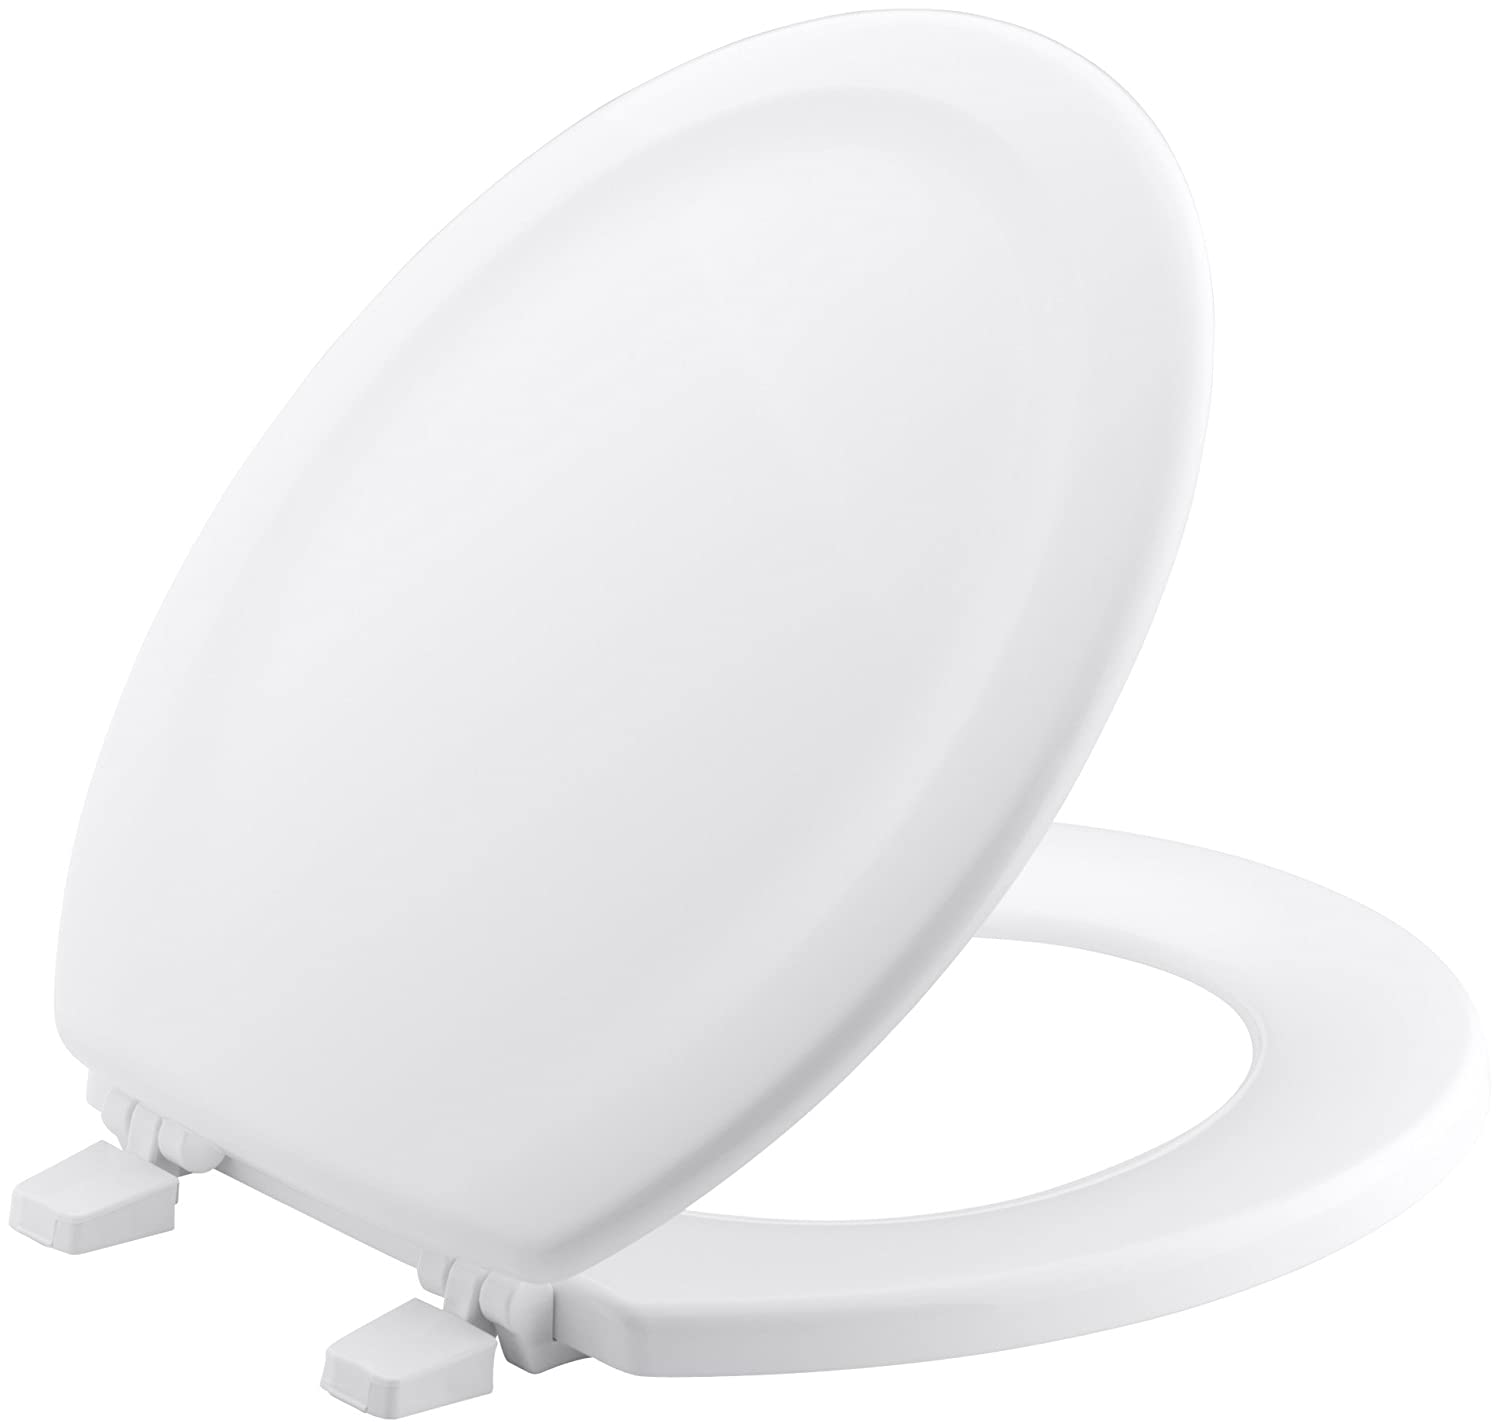 Pleasant Most Regular Toilet Seats Preferred By Many Of Us Toilet Dailytribune Chair Design For Home Dailytribuneorg